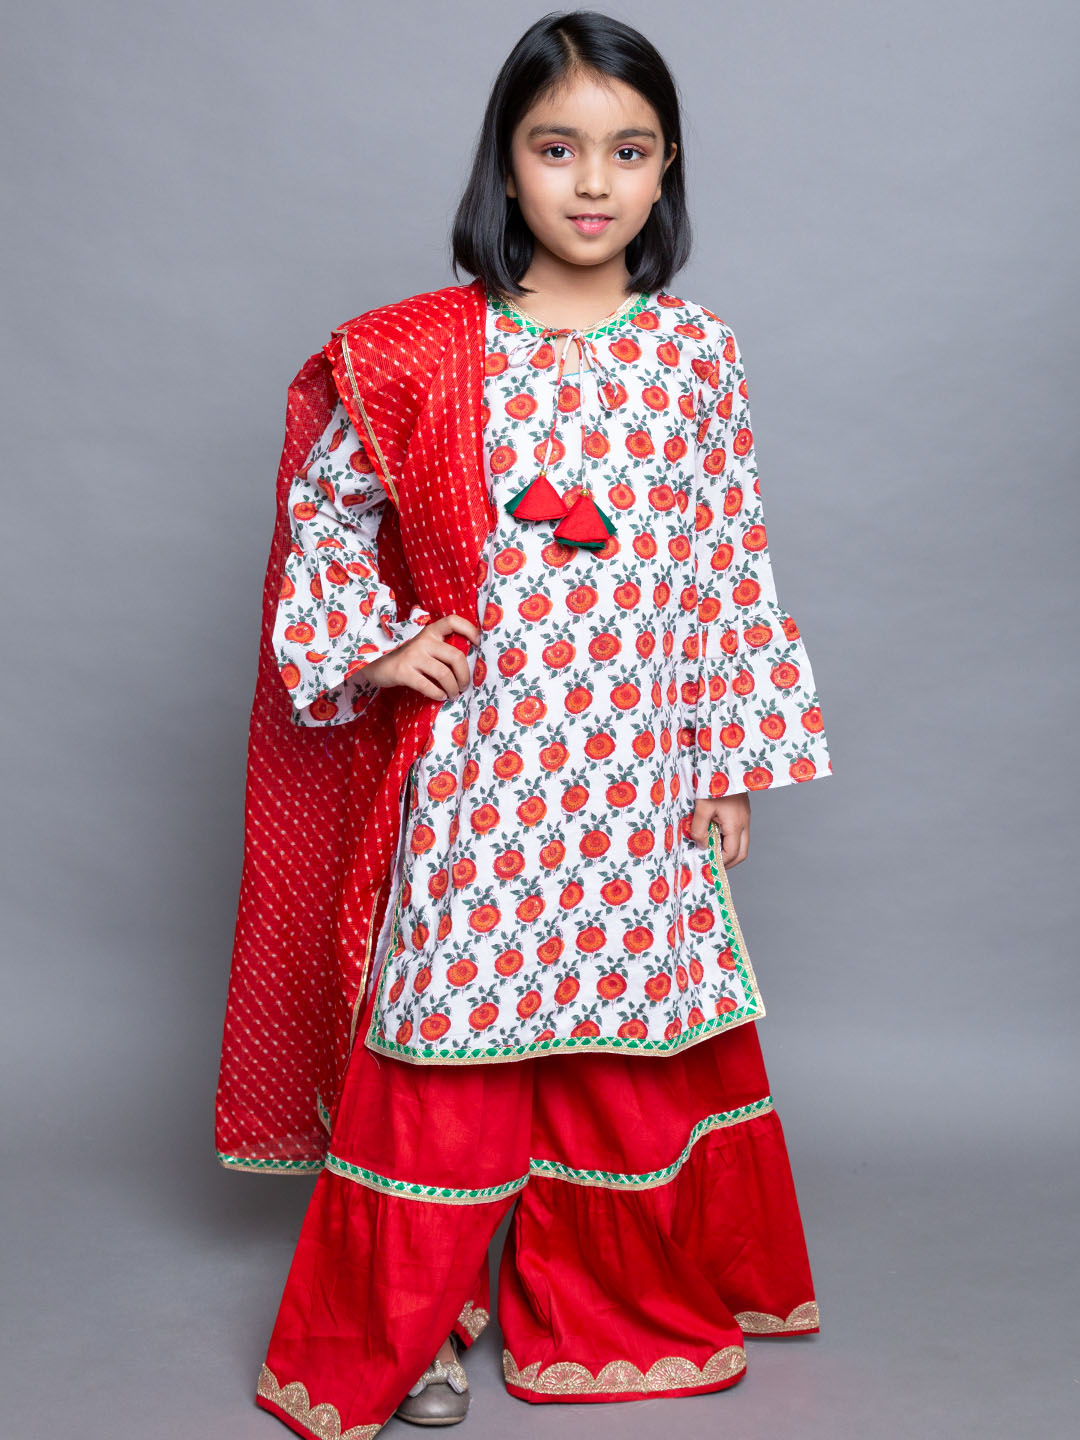 Floral Red White Cotton Printed  Suit with red dupatta and sharara pants